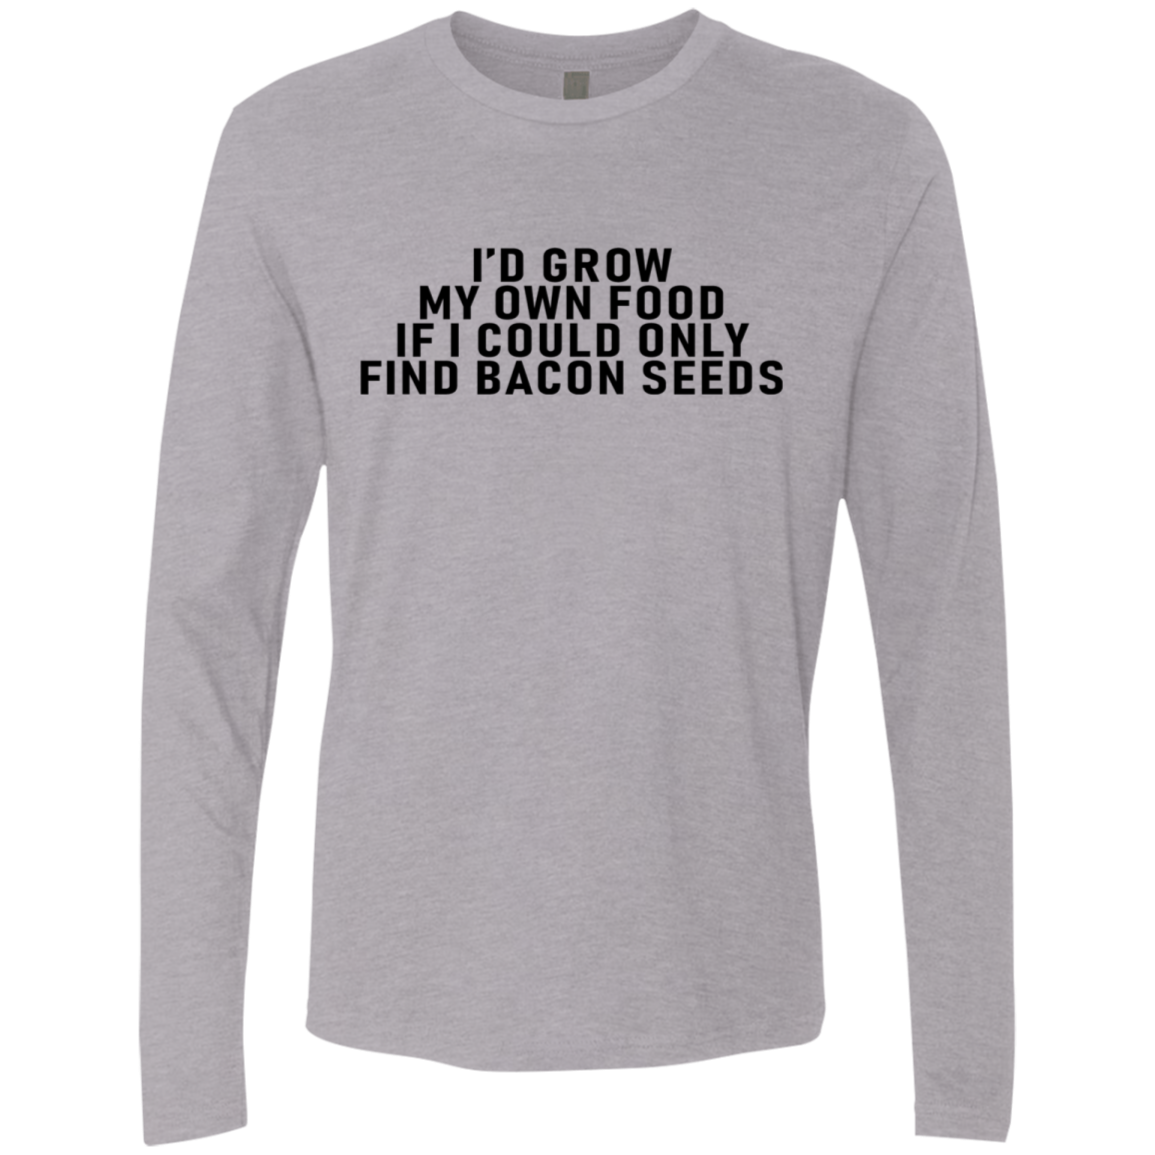 I'd Grow My Own Food Only If I Could Find Bacon Seeds Men's Long Sleeve Tee